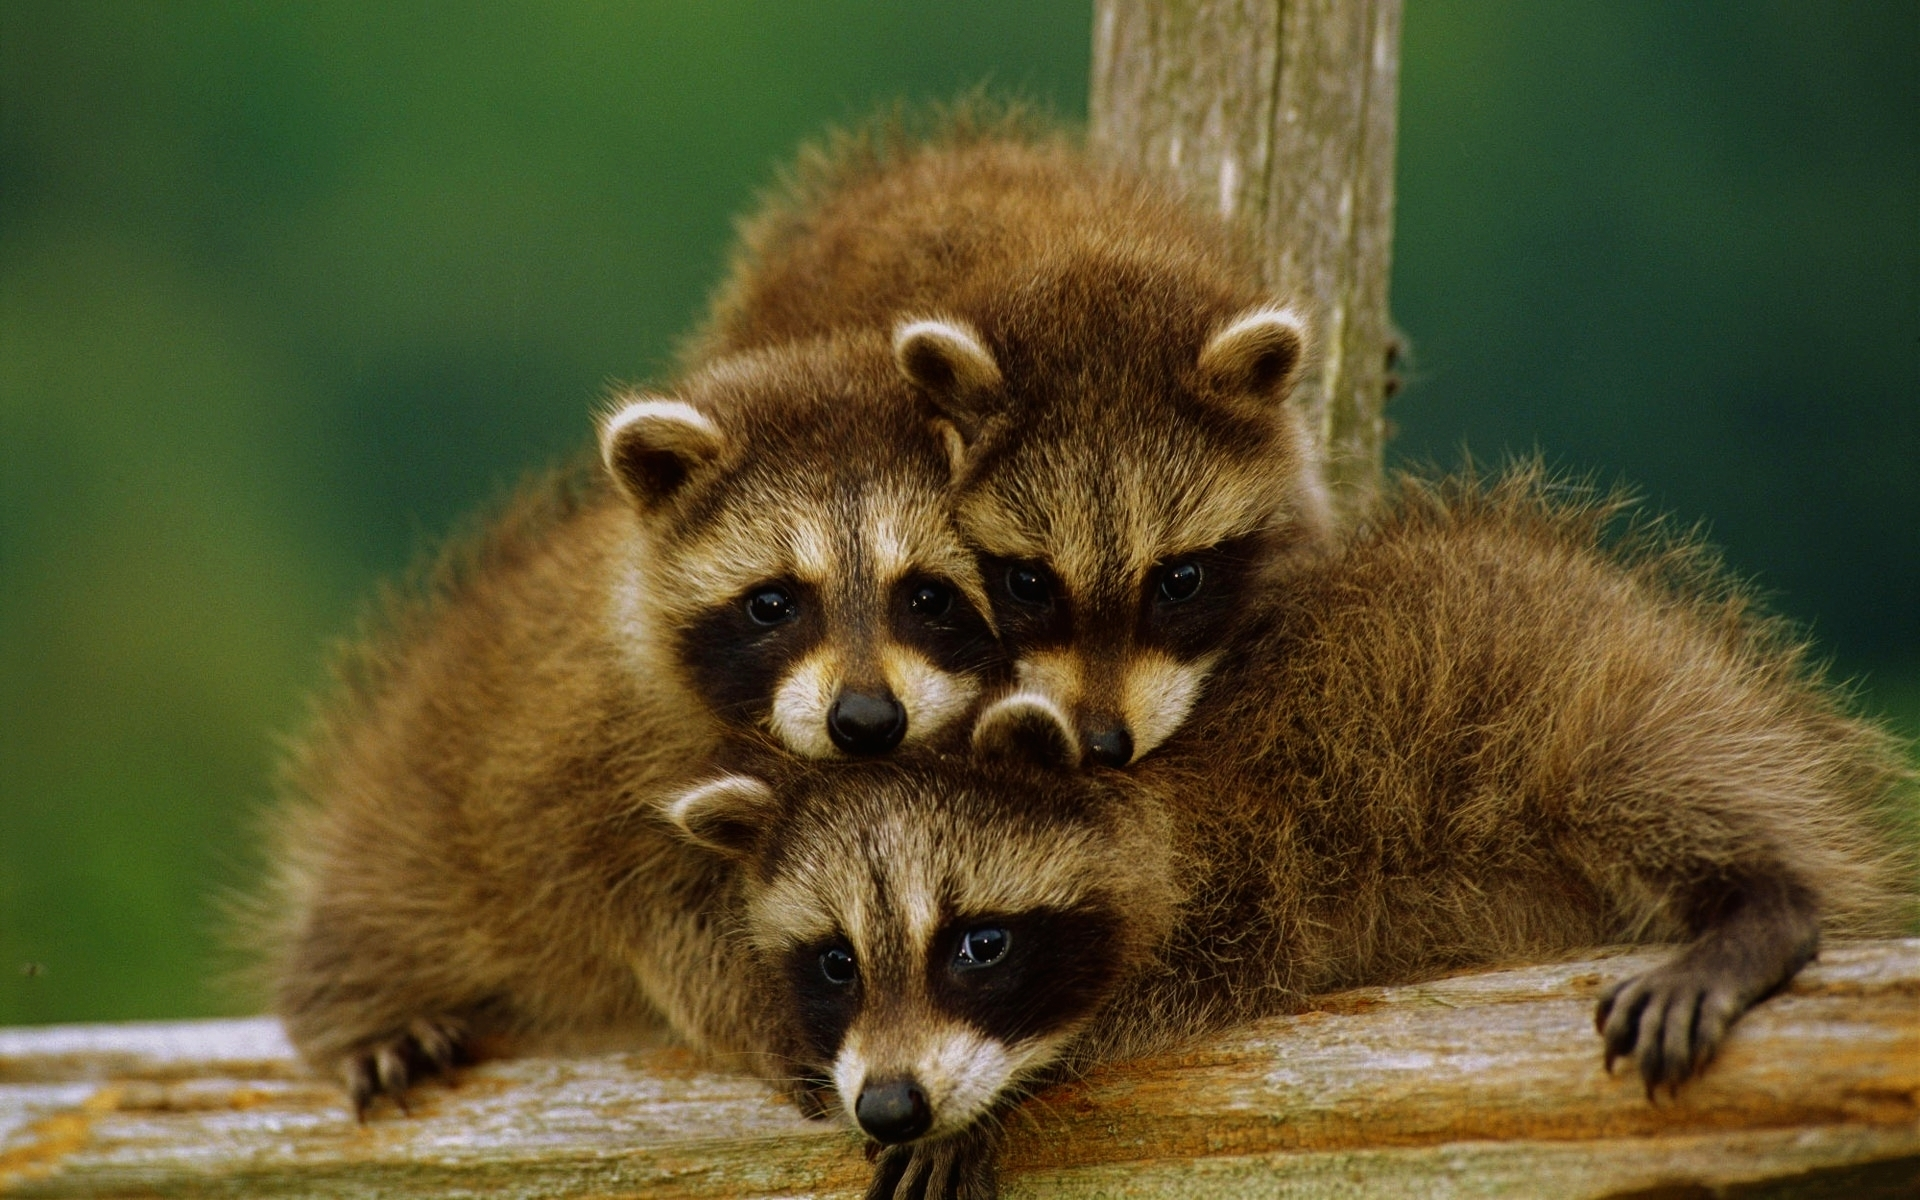 30293 download wallpaper Animals, Raccoons screensavers and pictures for free